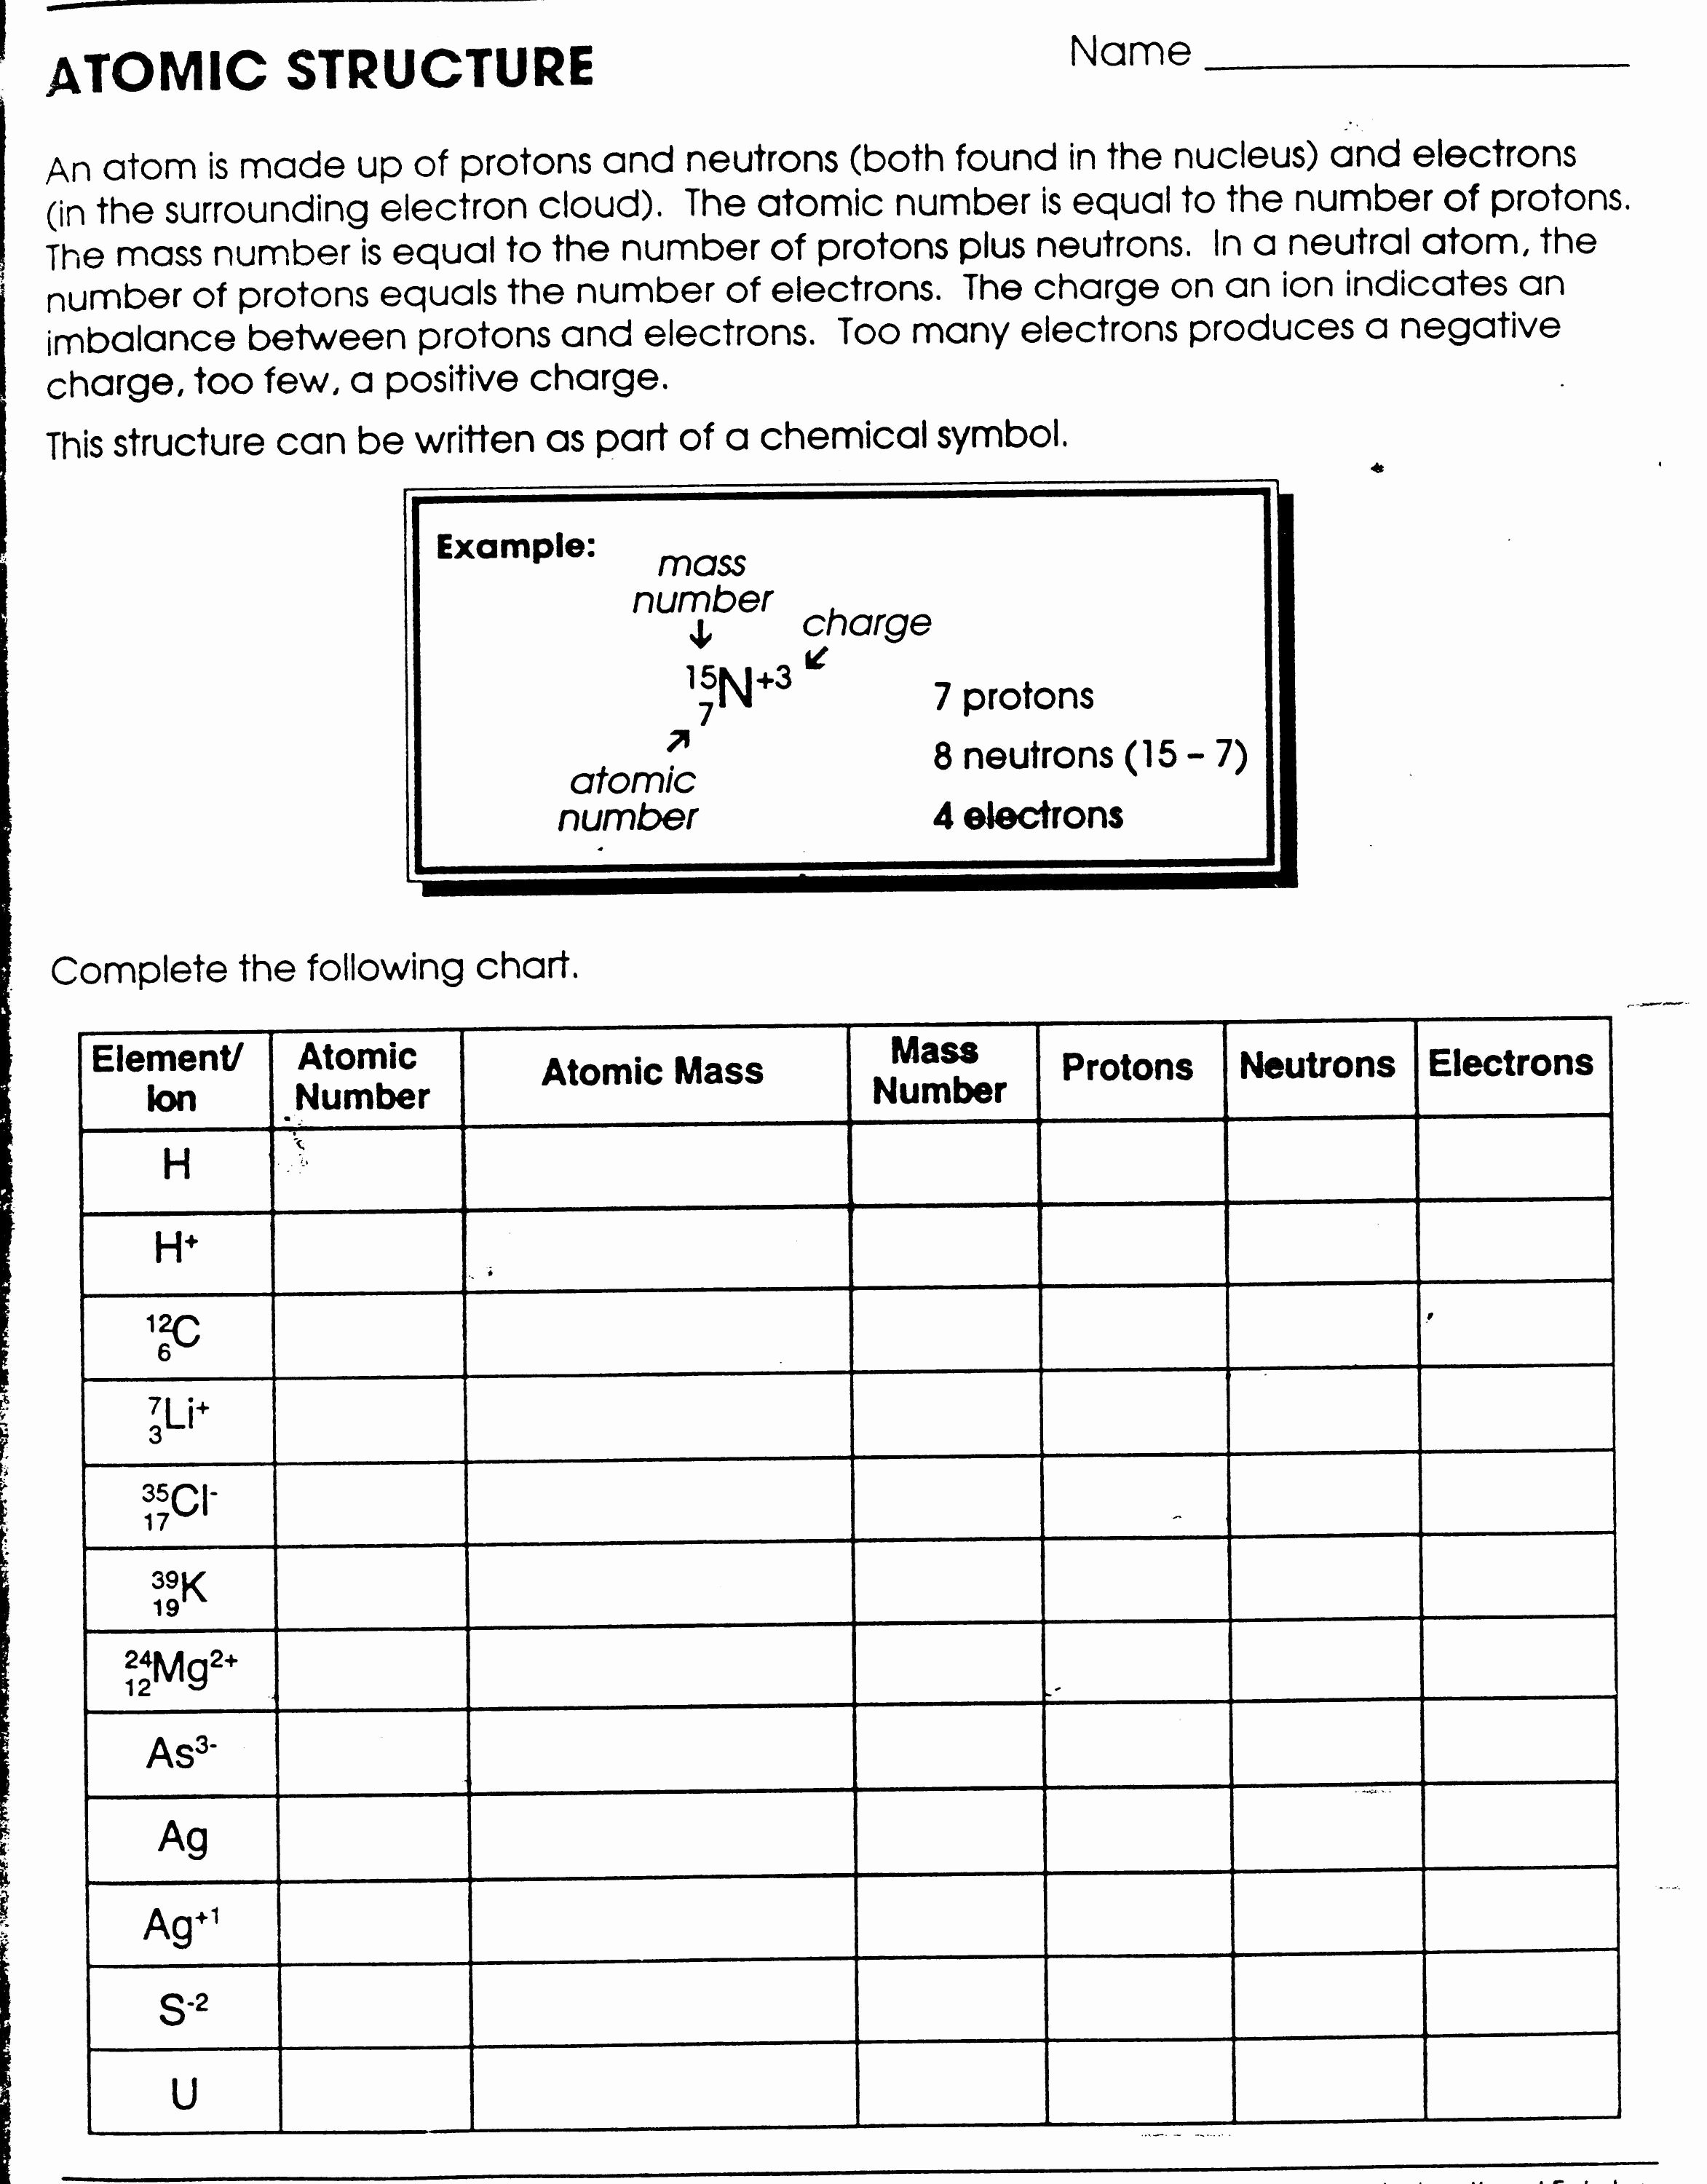 Basic atomic Structure Worksheet Answers Best Of 12 Best Of atomic Structure Diagram Worksheet